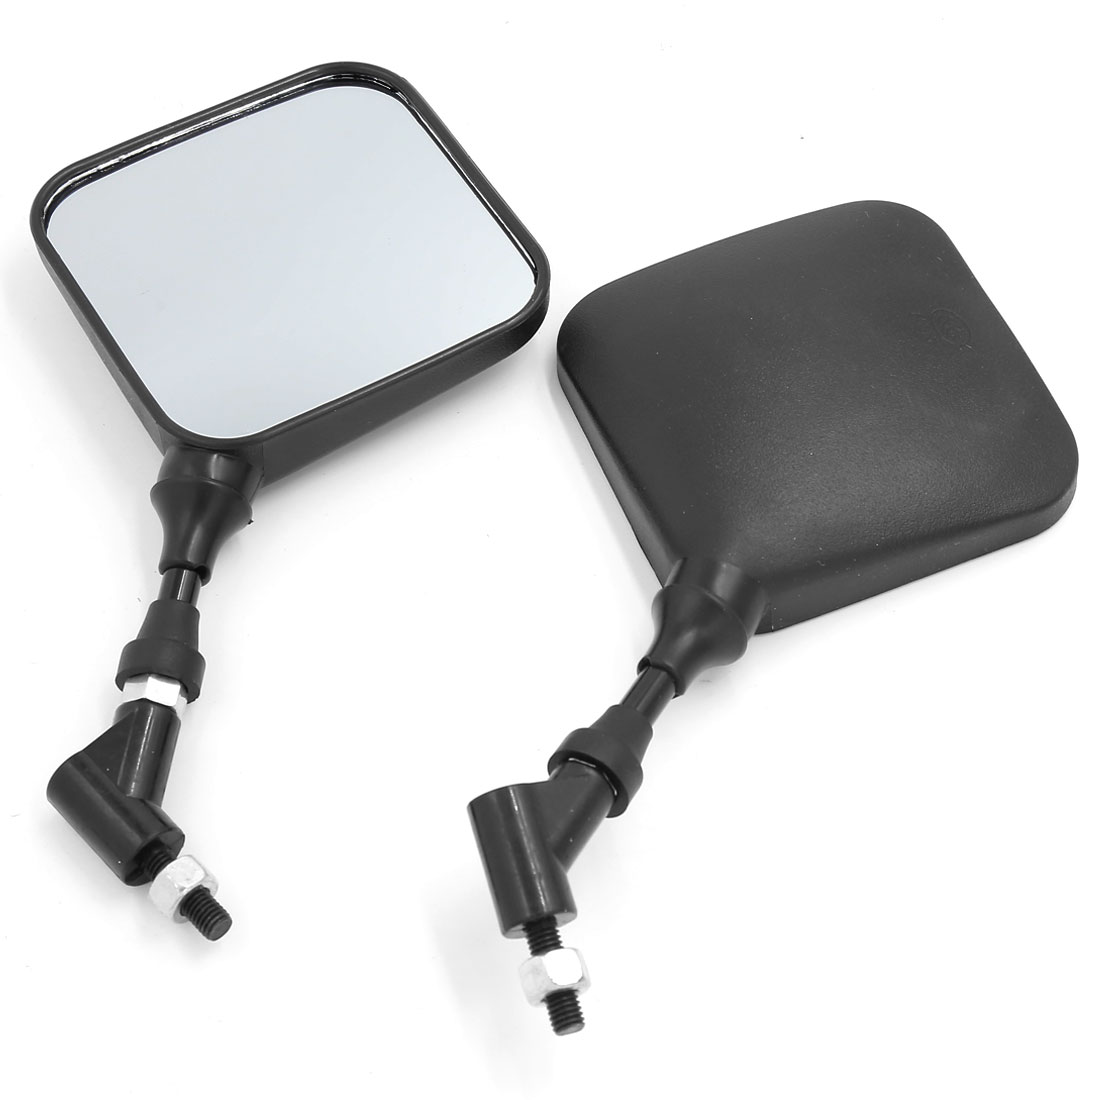 Universal Square Shaped Motorcycle Rear View Mirror Rearview Mirrors 8mm Thread 2pcs